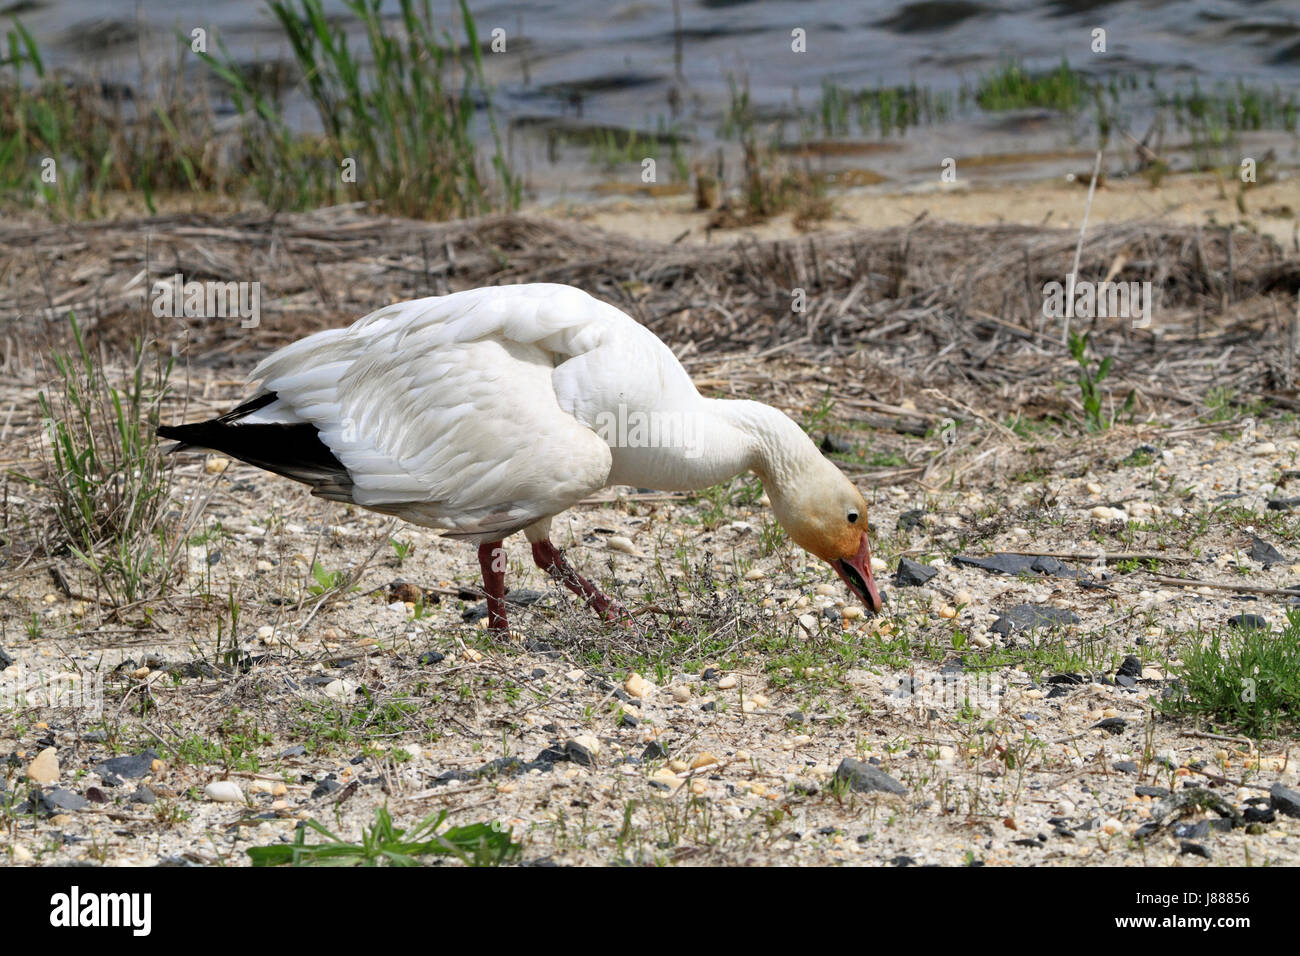 A Snow Goose, Chen caerulescens, at the Edwin B. Forsythe National Wildlife Refuge, New jersey, USA Stock Photo